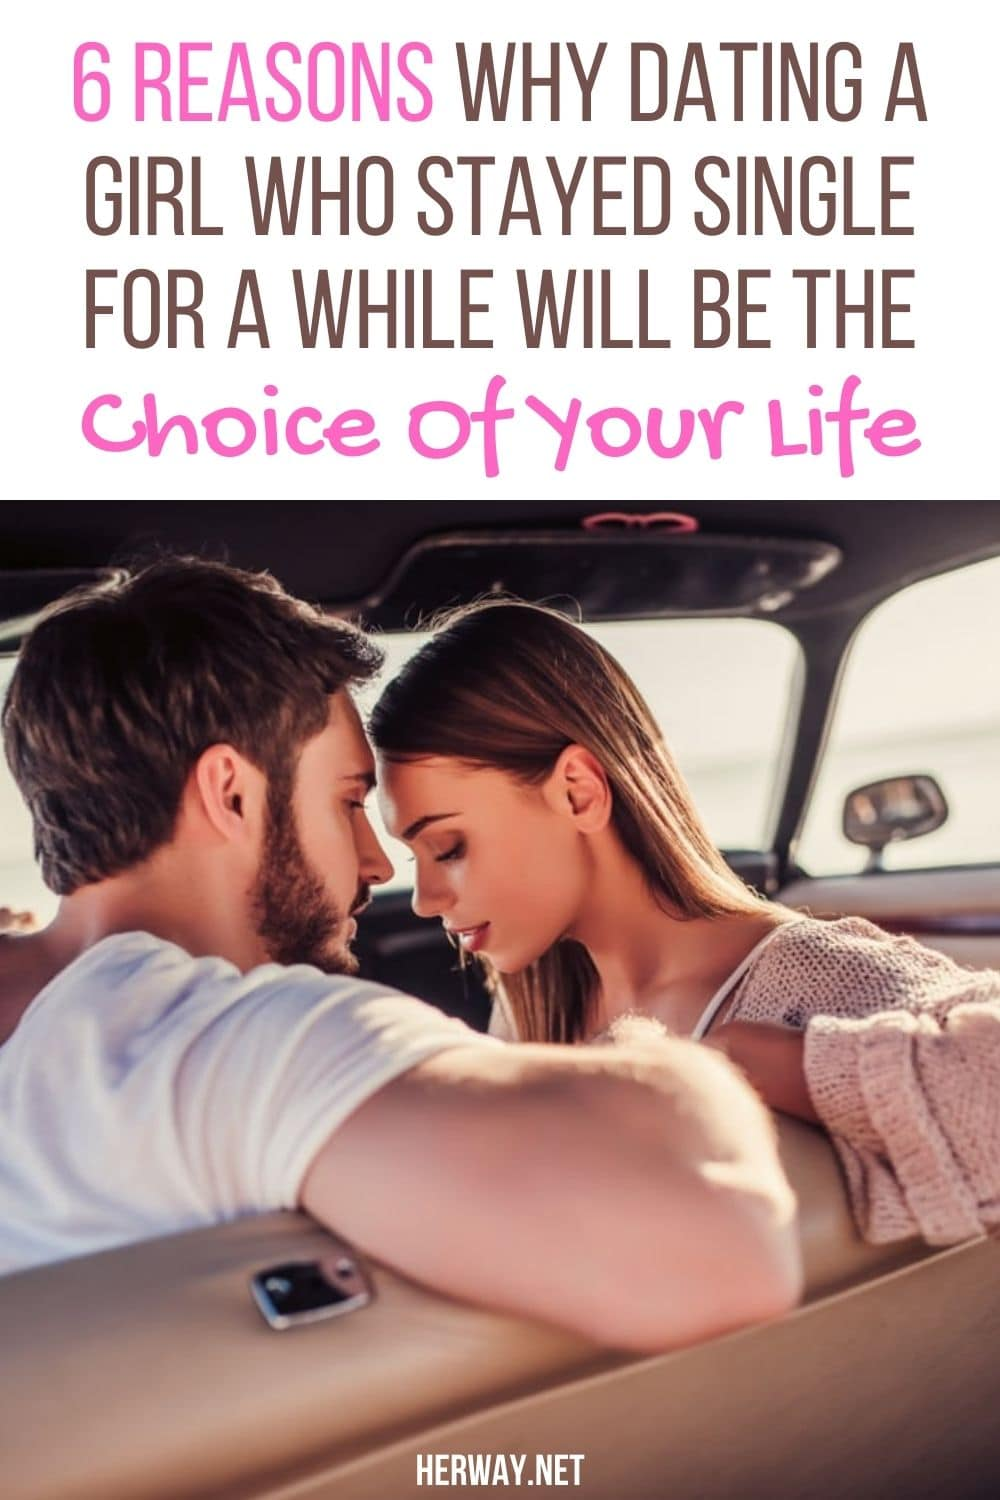 6 Reasons Why Dating A Girl Who Stayed Single For A While Will Be The Choice Of Your Life